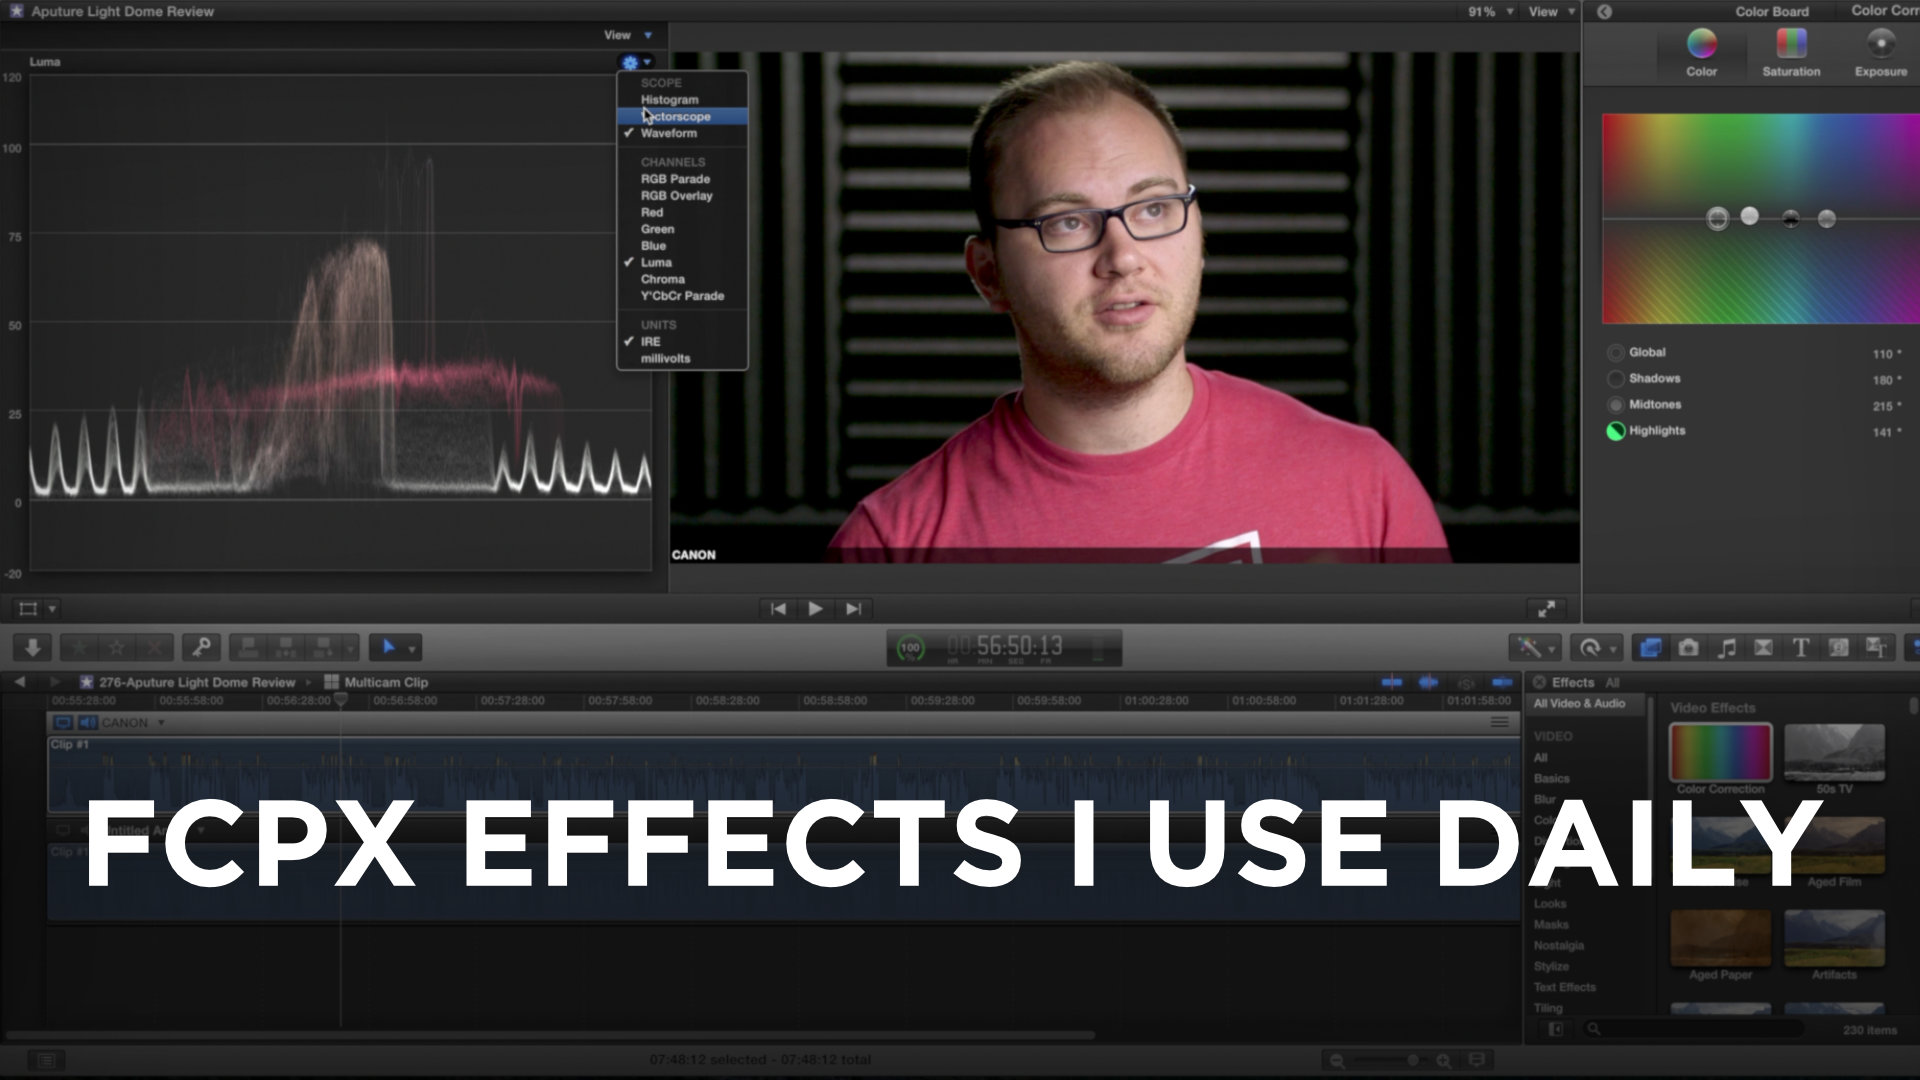 FCPX Effects and Filters I Use Daily